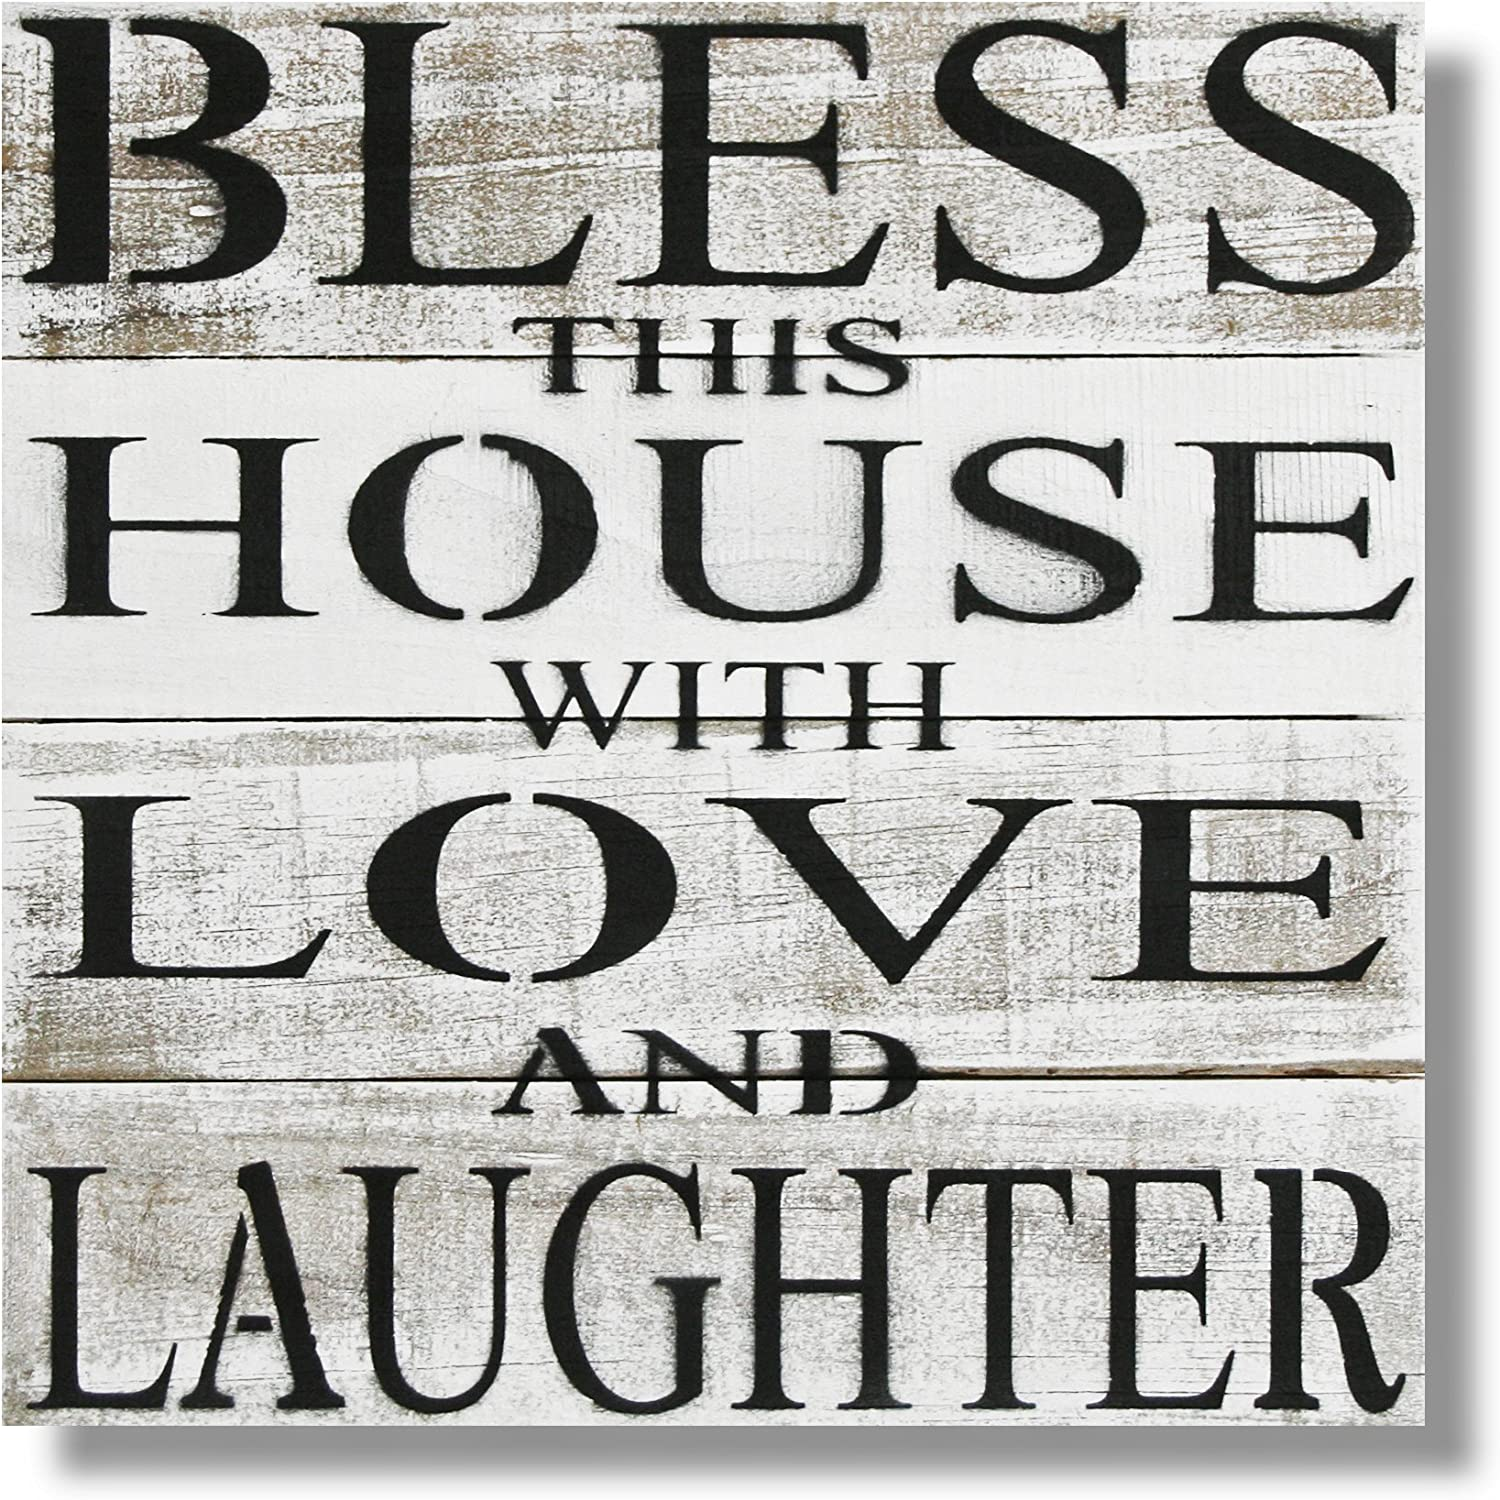 "Beach Frames White Extra Farmhouse Home Decor Bless This House with Love and Laughter Rustic Reclaimed Wood Wall Art Sign, X-Large, Washed 20.5"" x 20.25"""